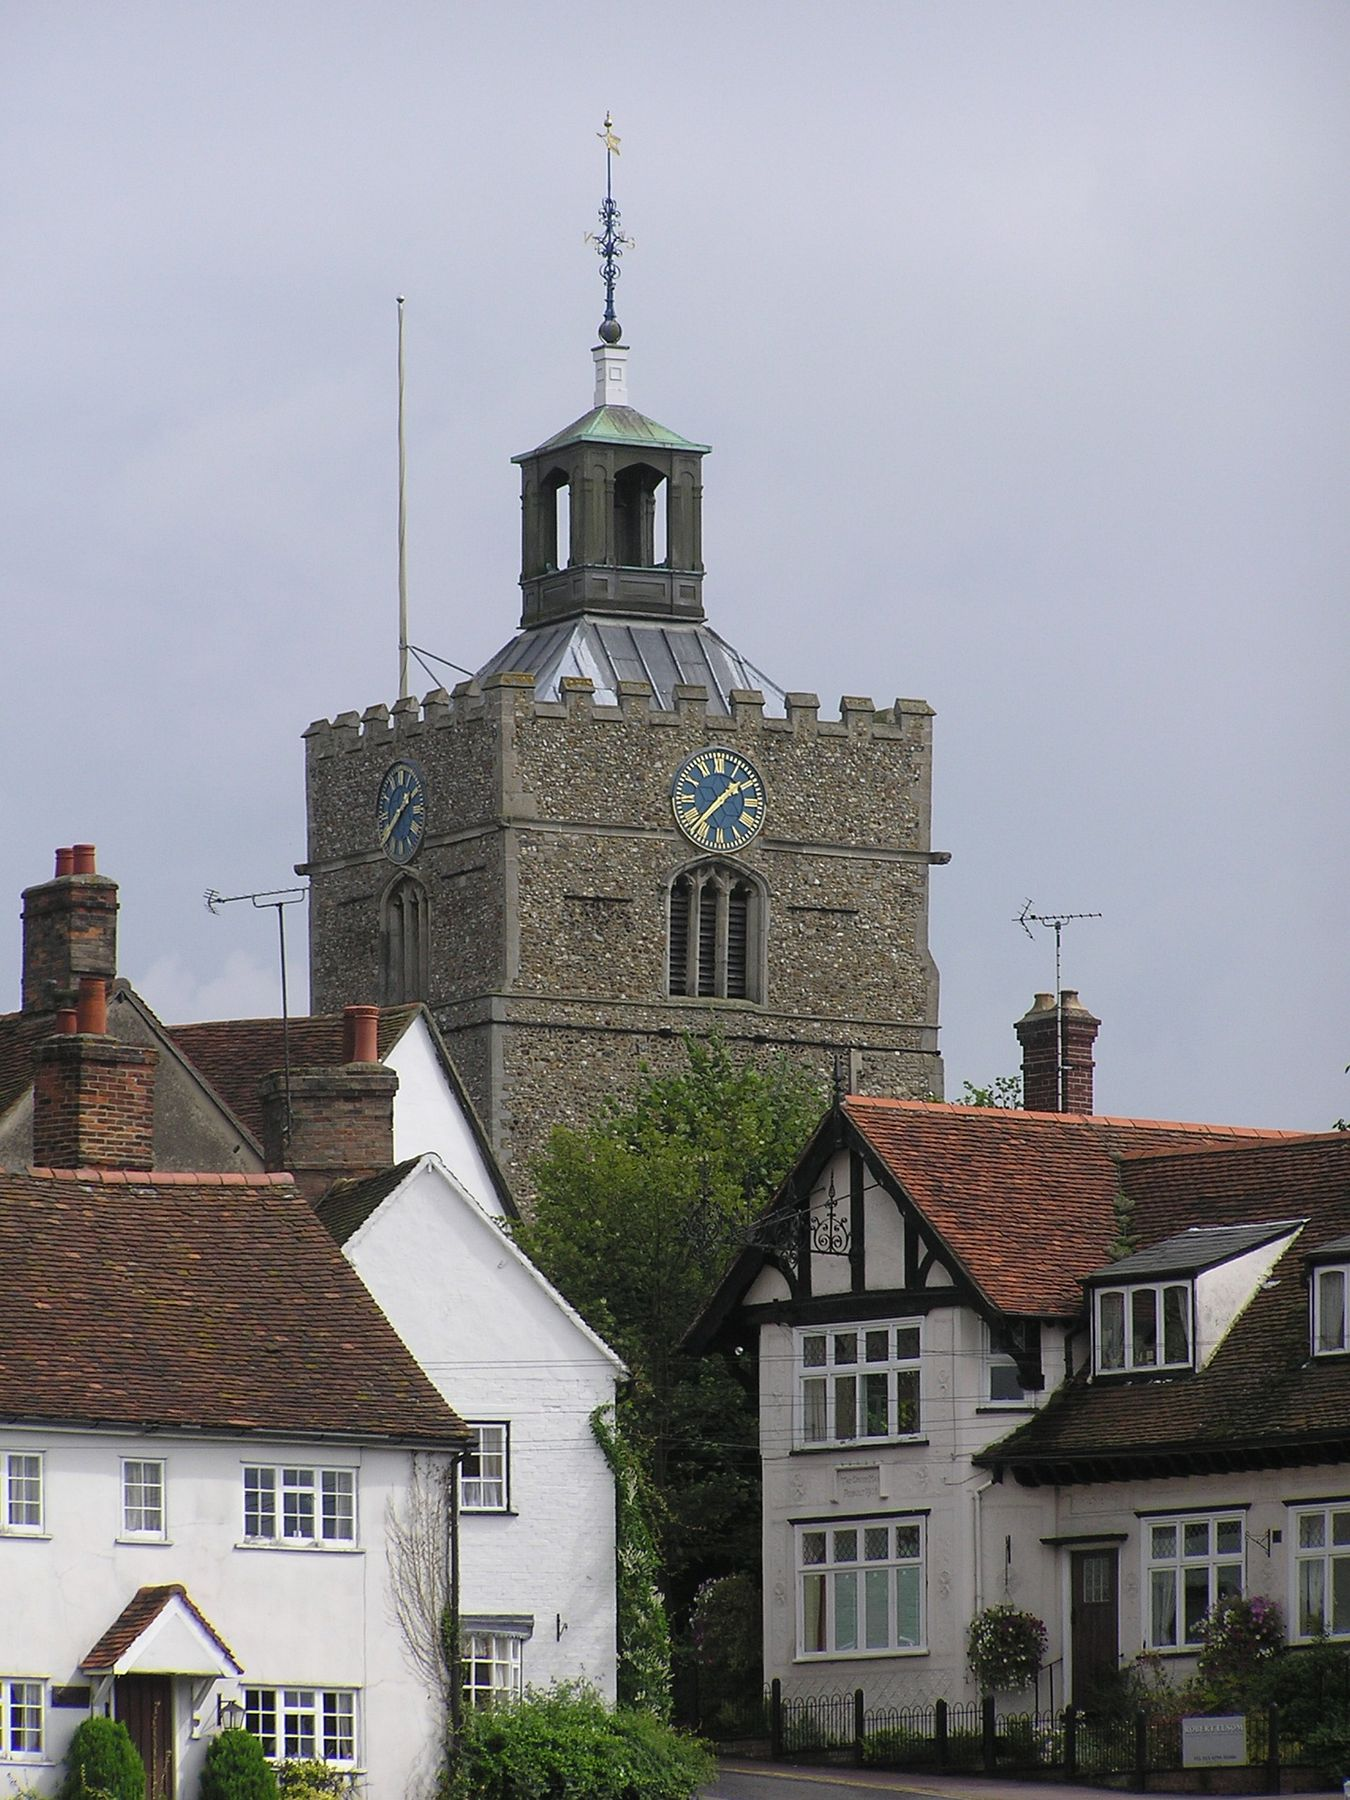 Finchingfield is a pretty English village near London